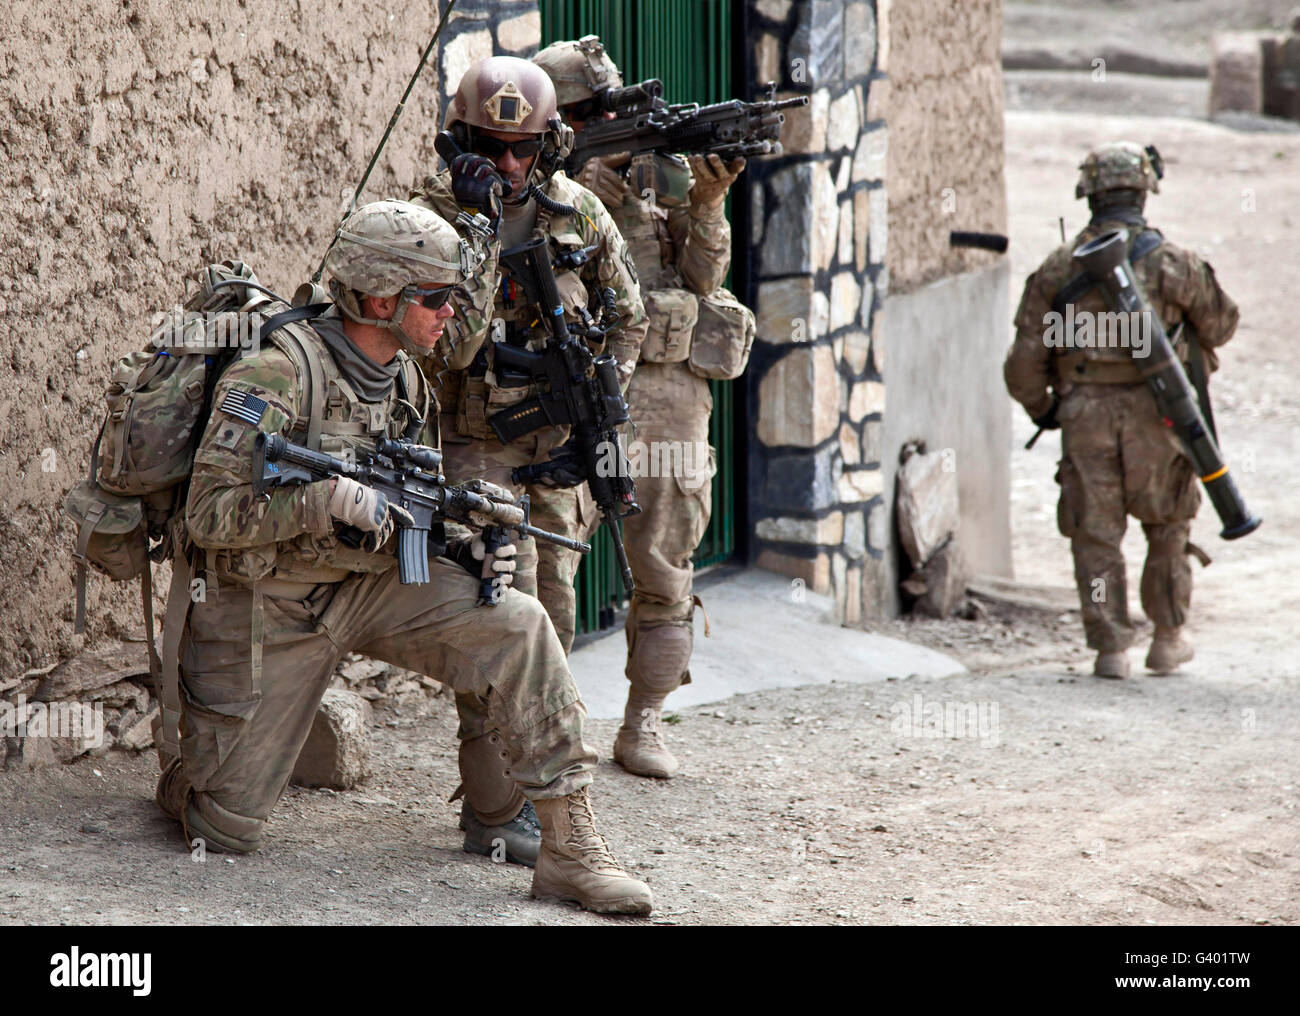 U.S. Army battalion pulls security in Afghanistan. - Stock Image